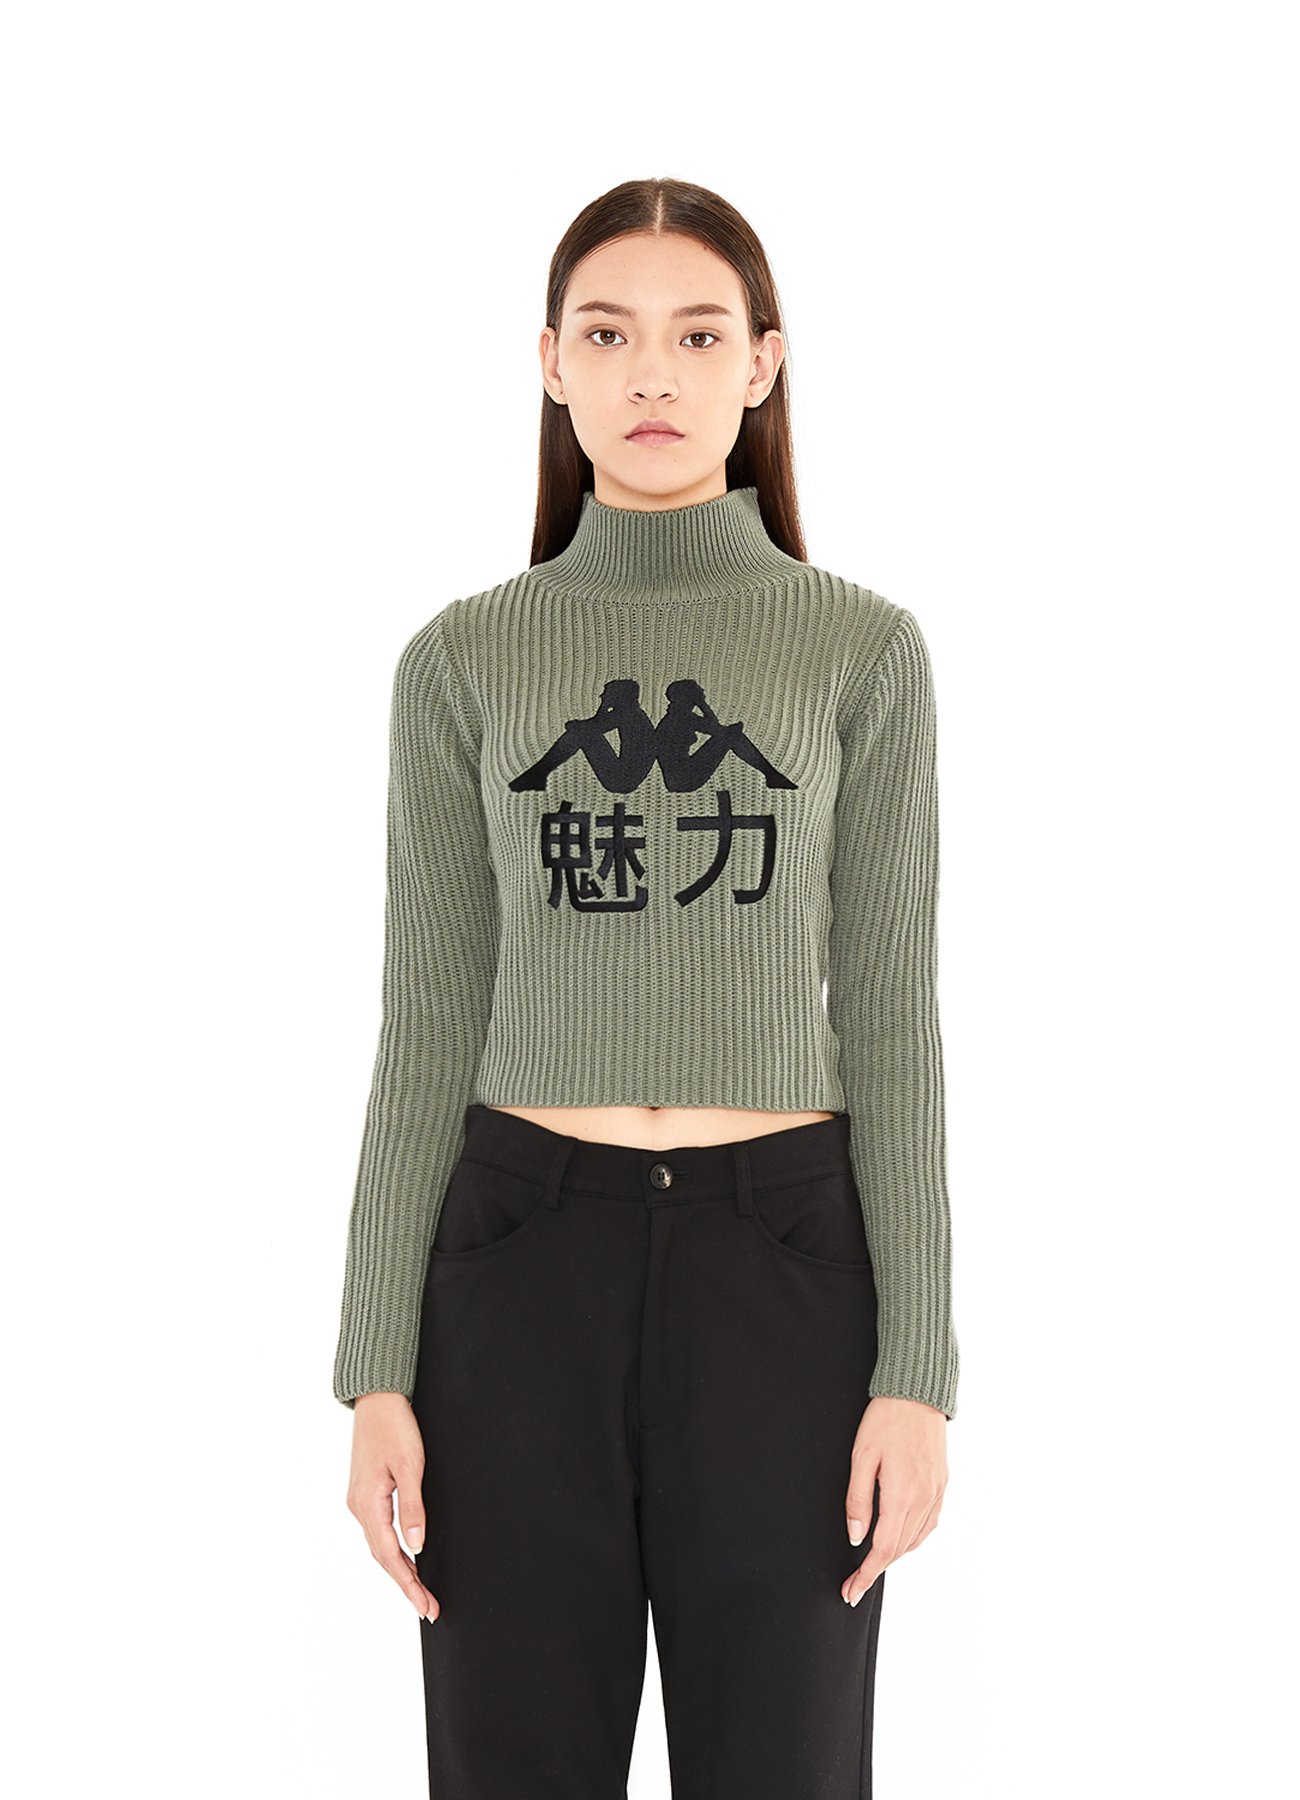 x Kappa 魅力 Turtleneck_KA